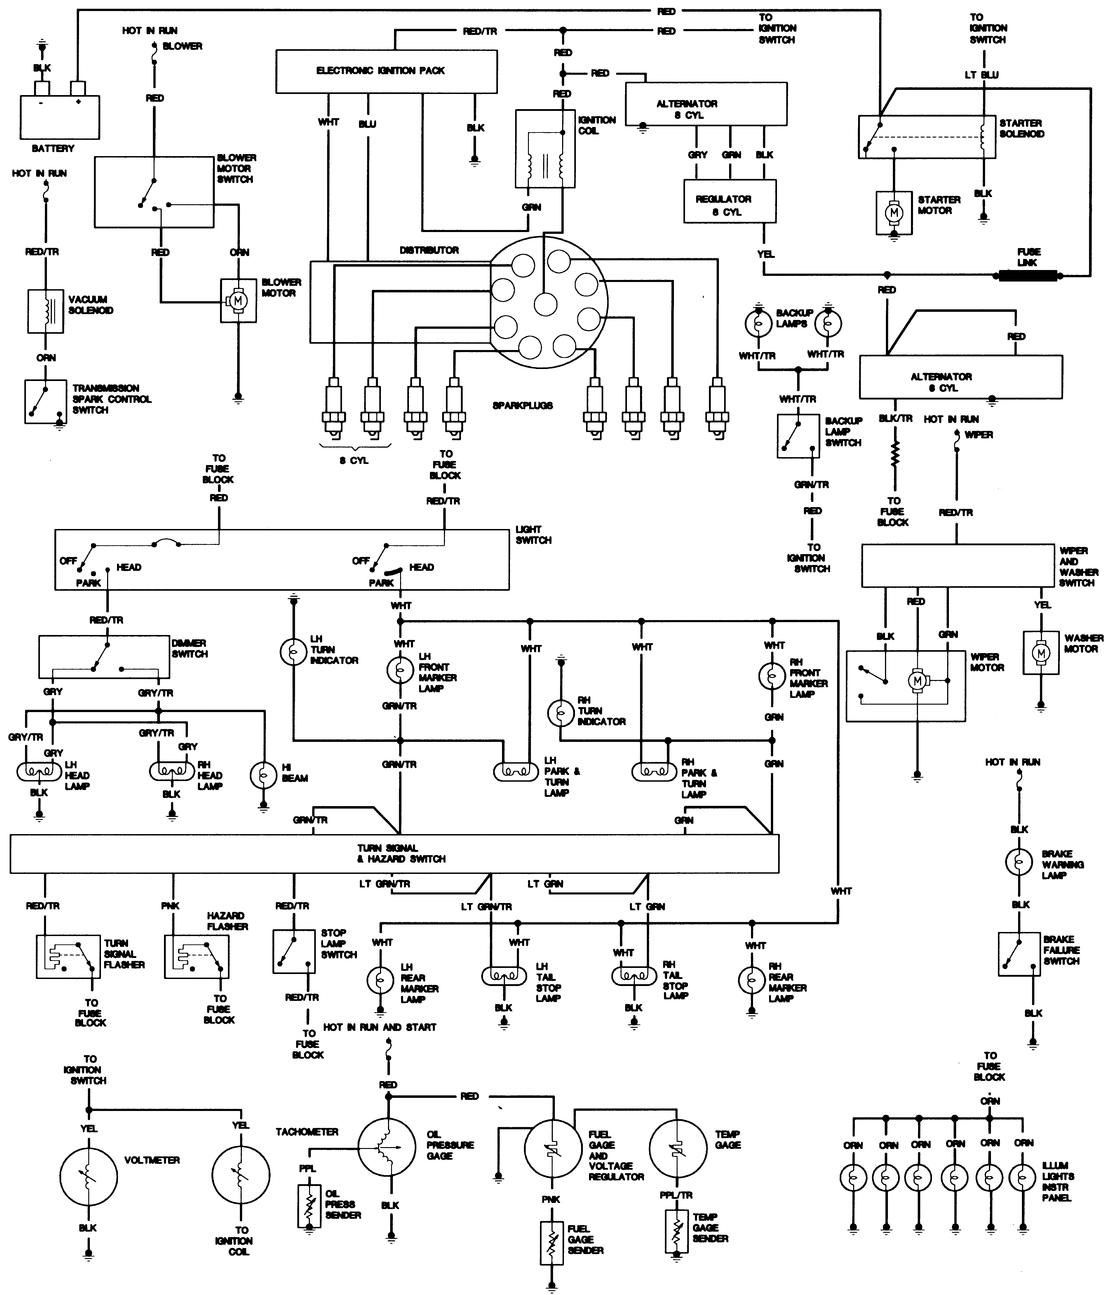 1980 Cj5 Wiring Diagram Furthermore Jeep Cj7 Tachometer Along With Steering Column Lighted Rocker Switch: 2000 Jeep Grand Cherokee Ke Line Diagram At Chusao.net